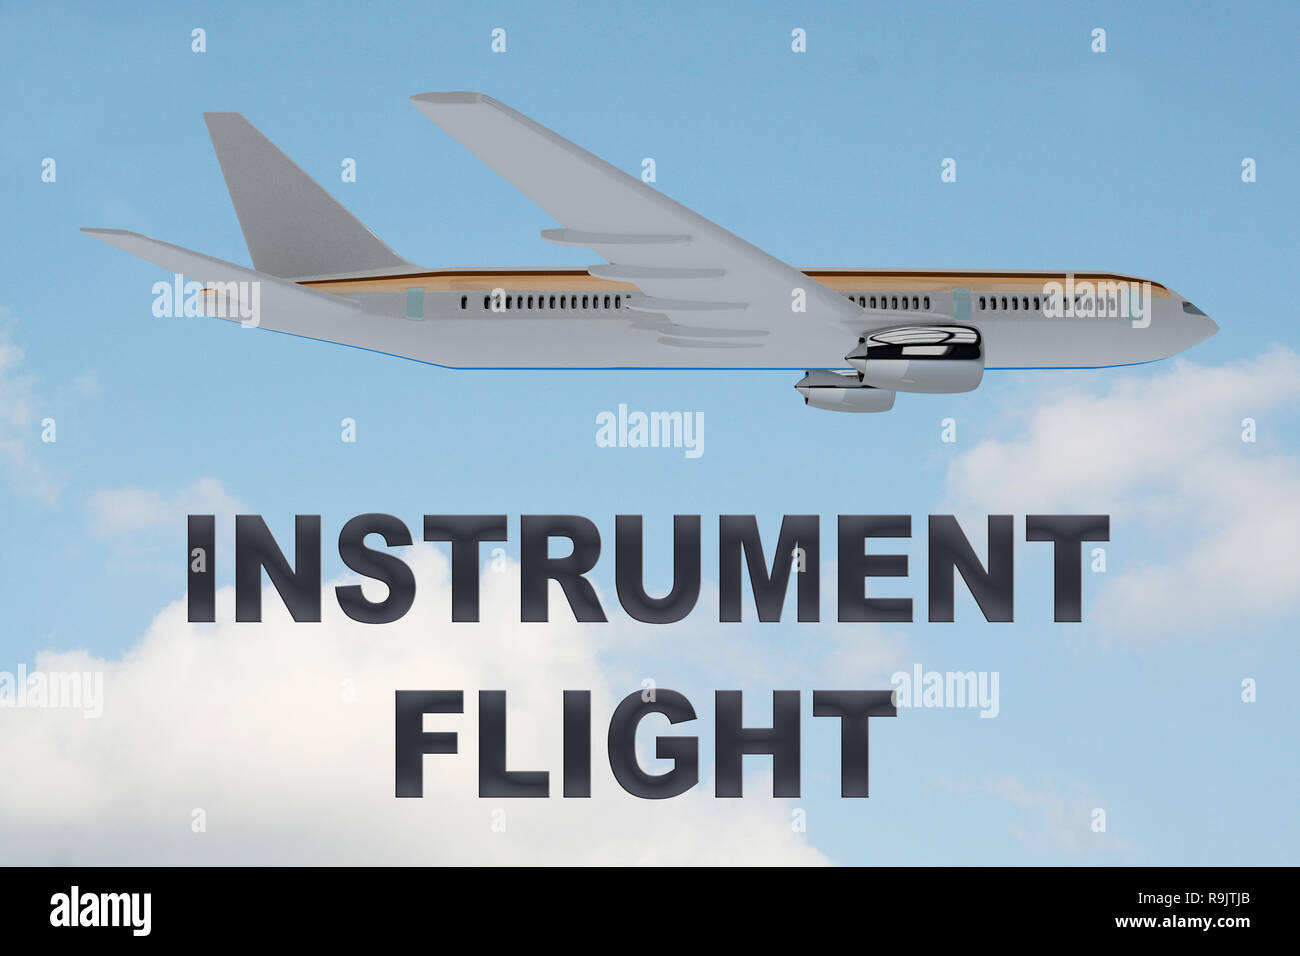 3D illustration of INSTRUMENT FLIGHT title on cloudy sky as a background, under an airplane. - Stock Image